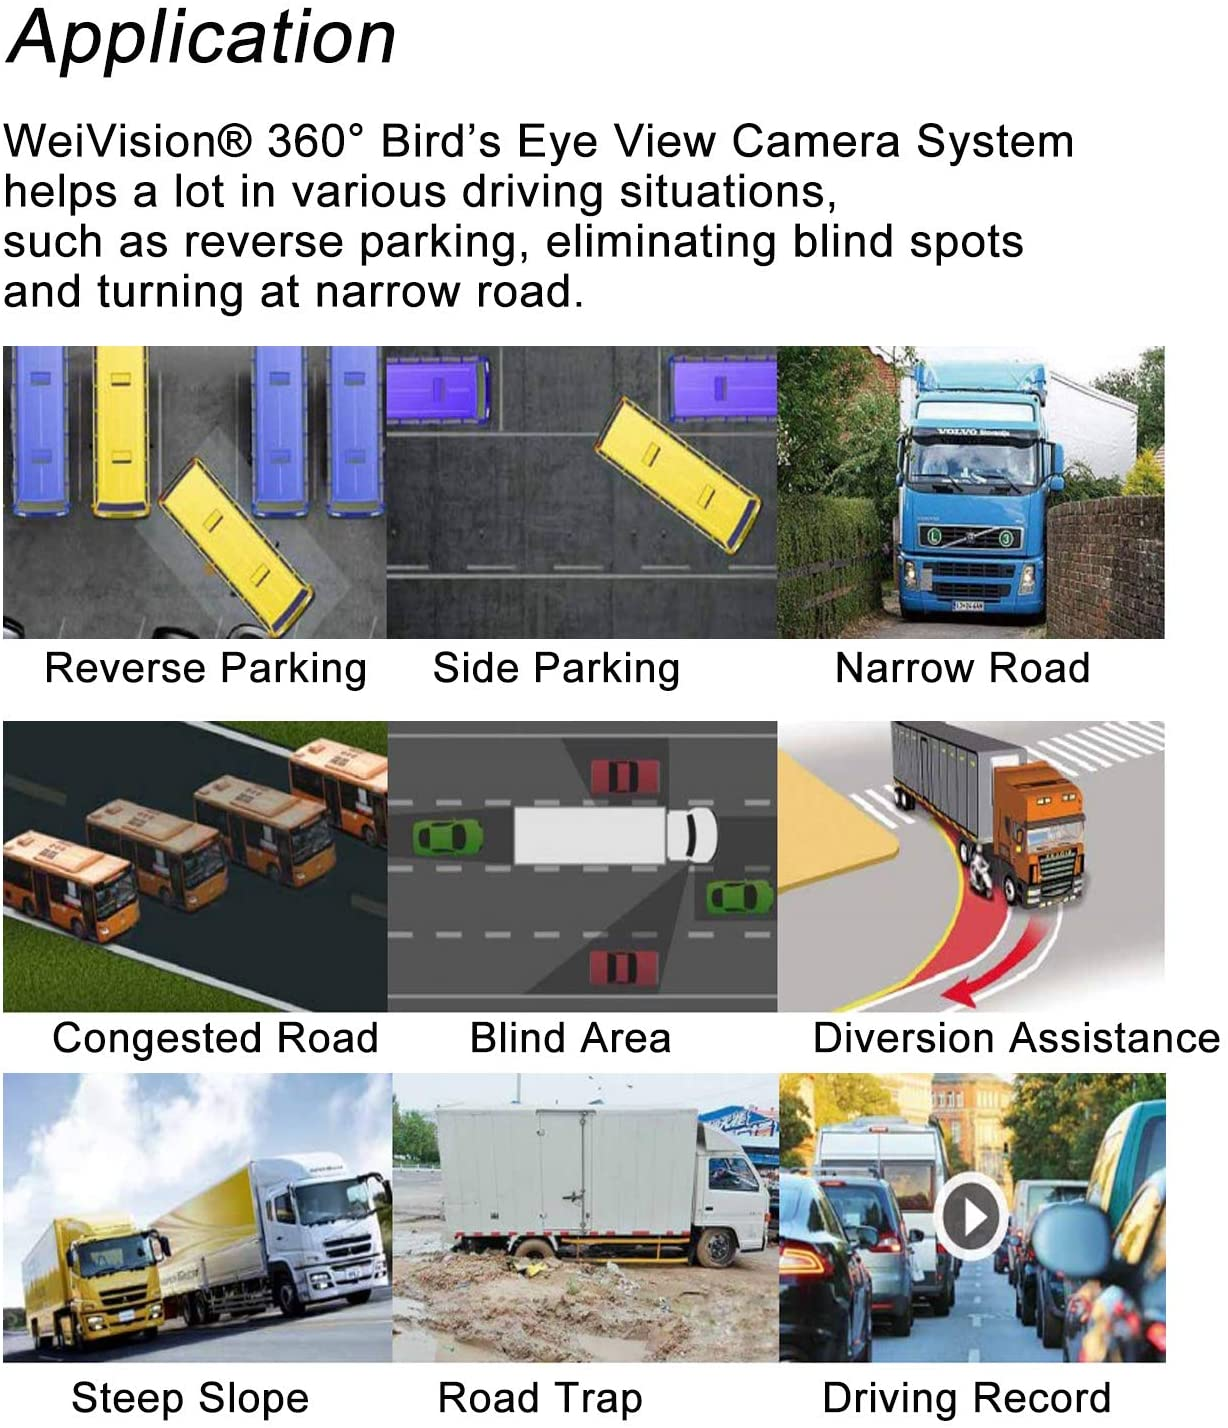 7inch HD Display /… Weivision 1080P FHD 360 Degree Bird View Surround Panoramic View Car Vihicle DVR Camera System Kit for Fire Engine//Bus//School Bus//Truck//Semi-Trailer//Box Truck//RV